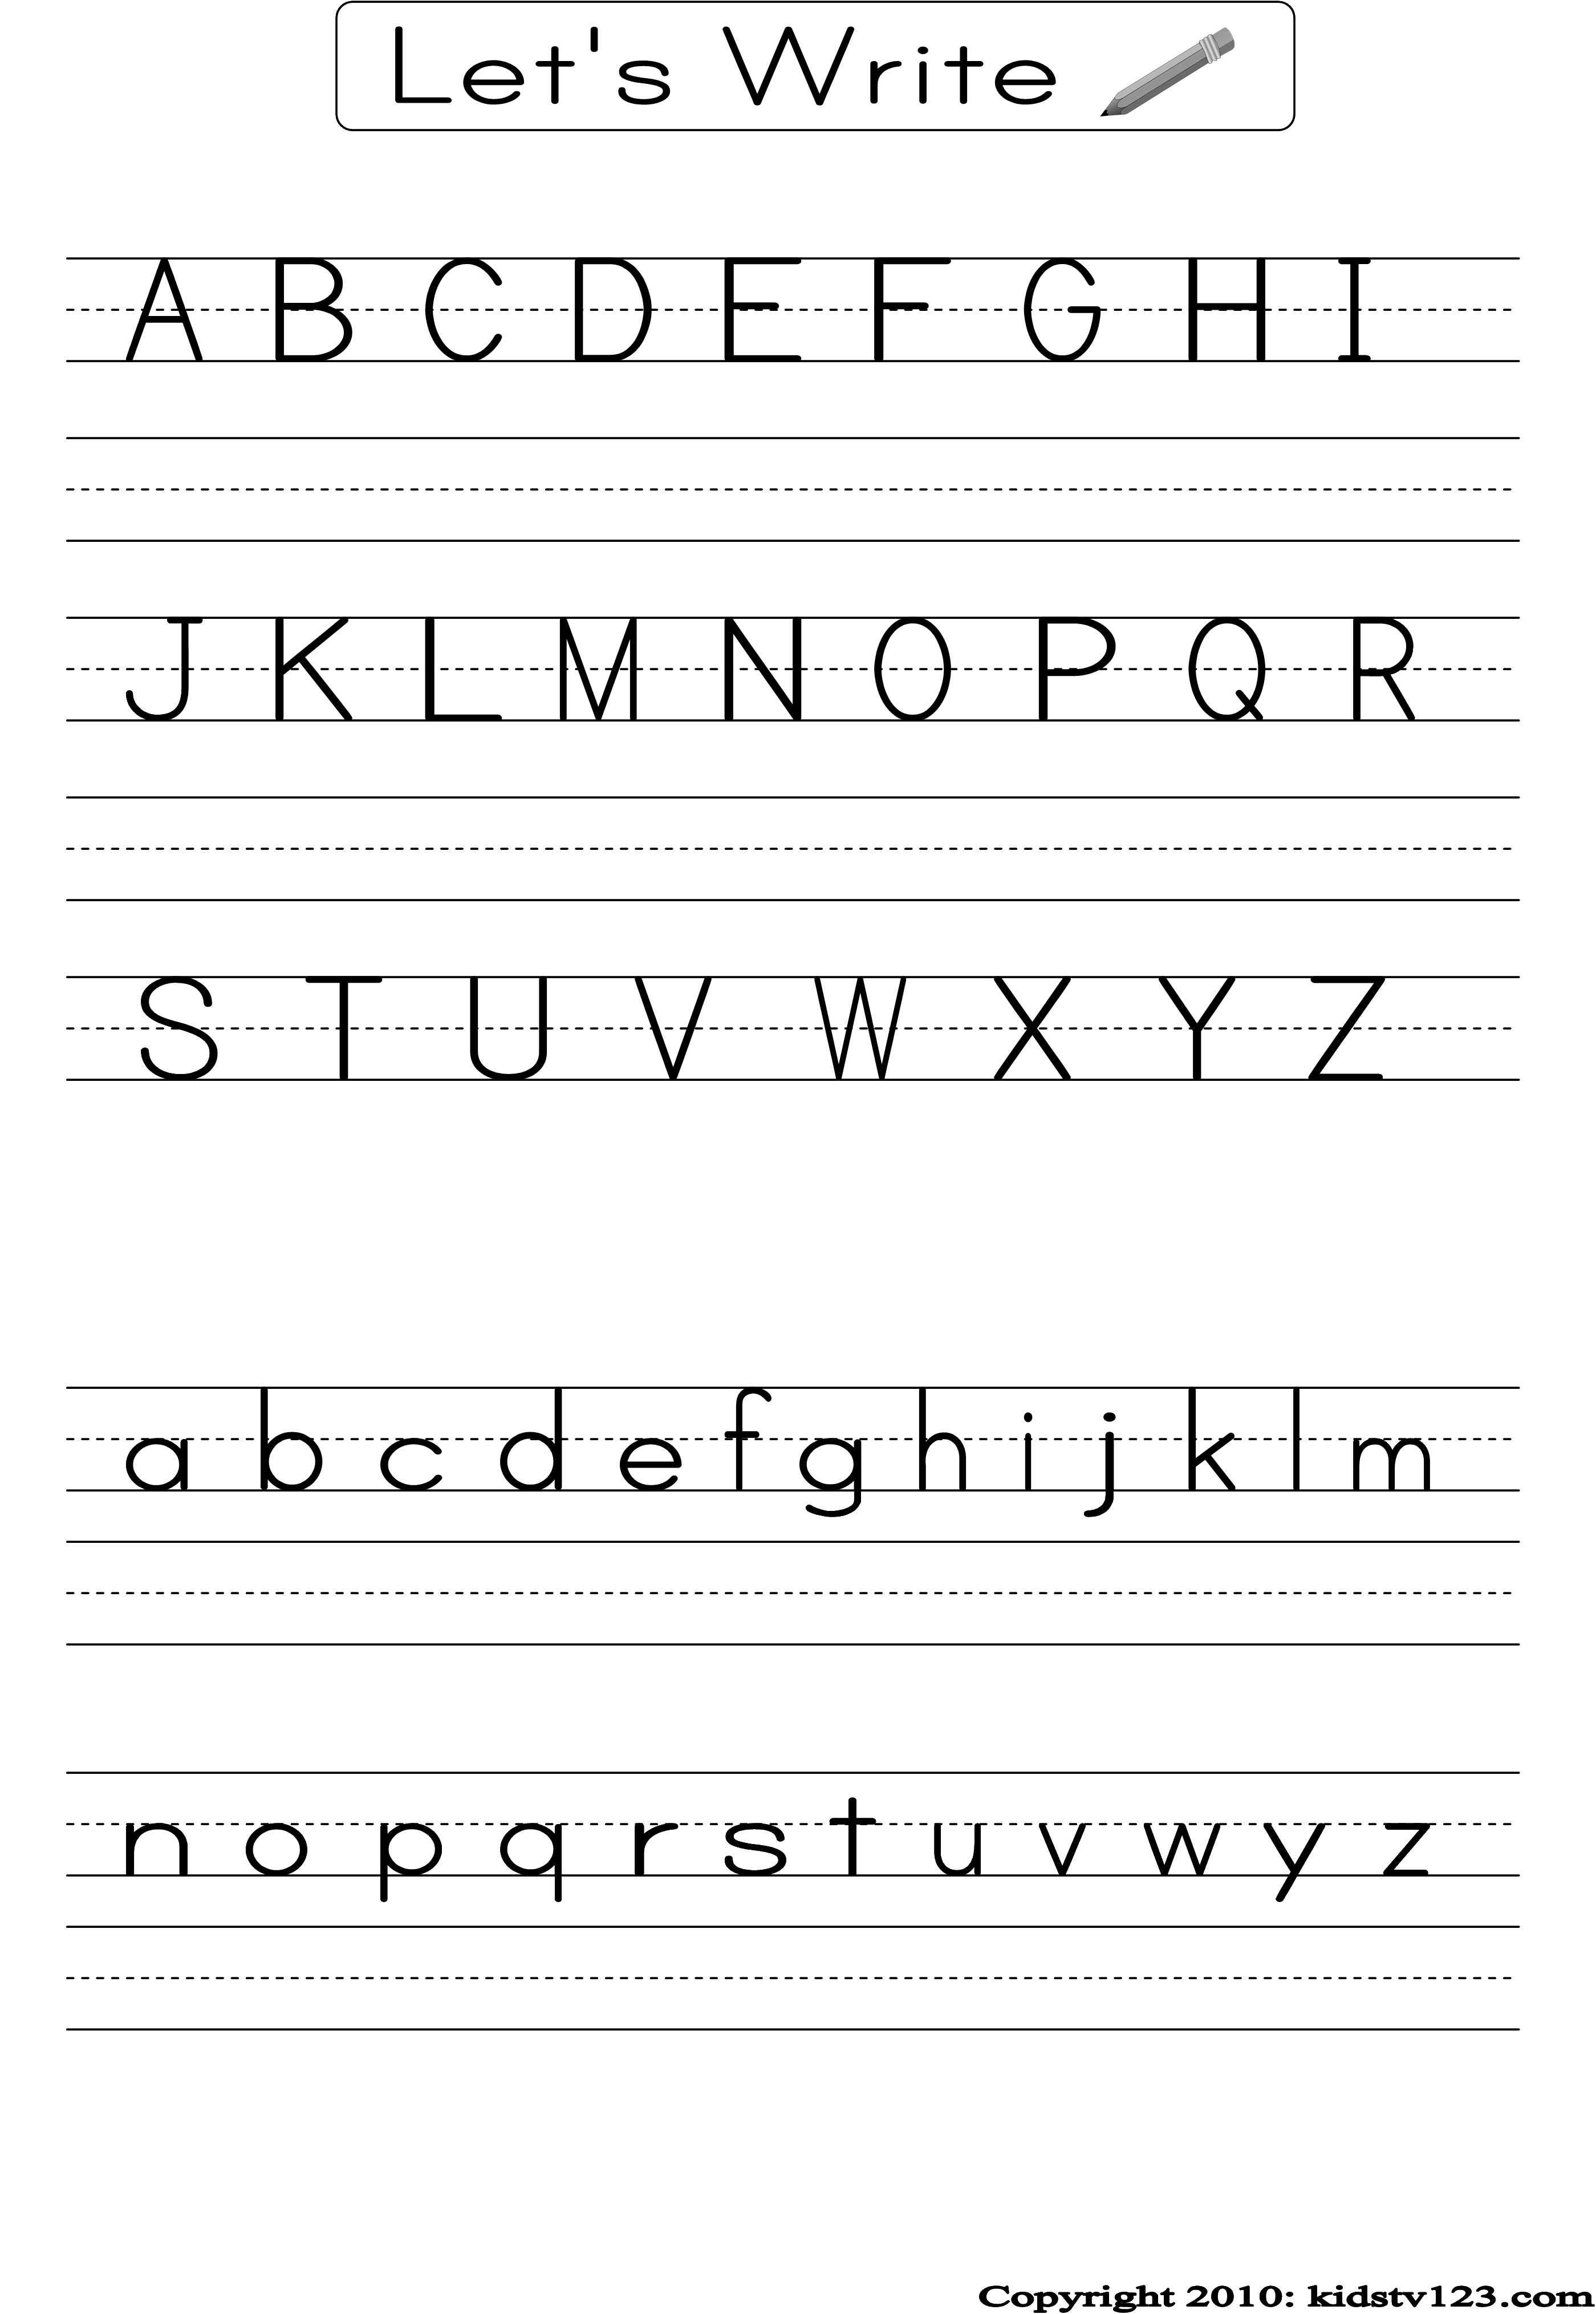 Image Result For Writing Alphabet Dengan Gambar